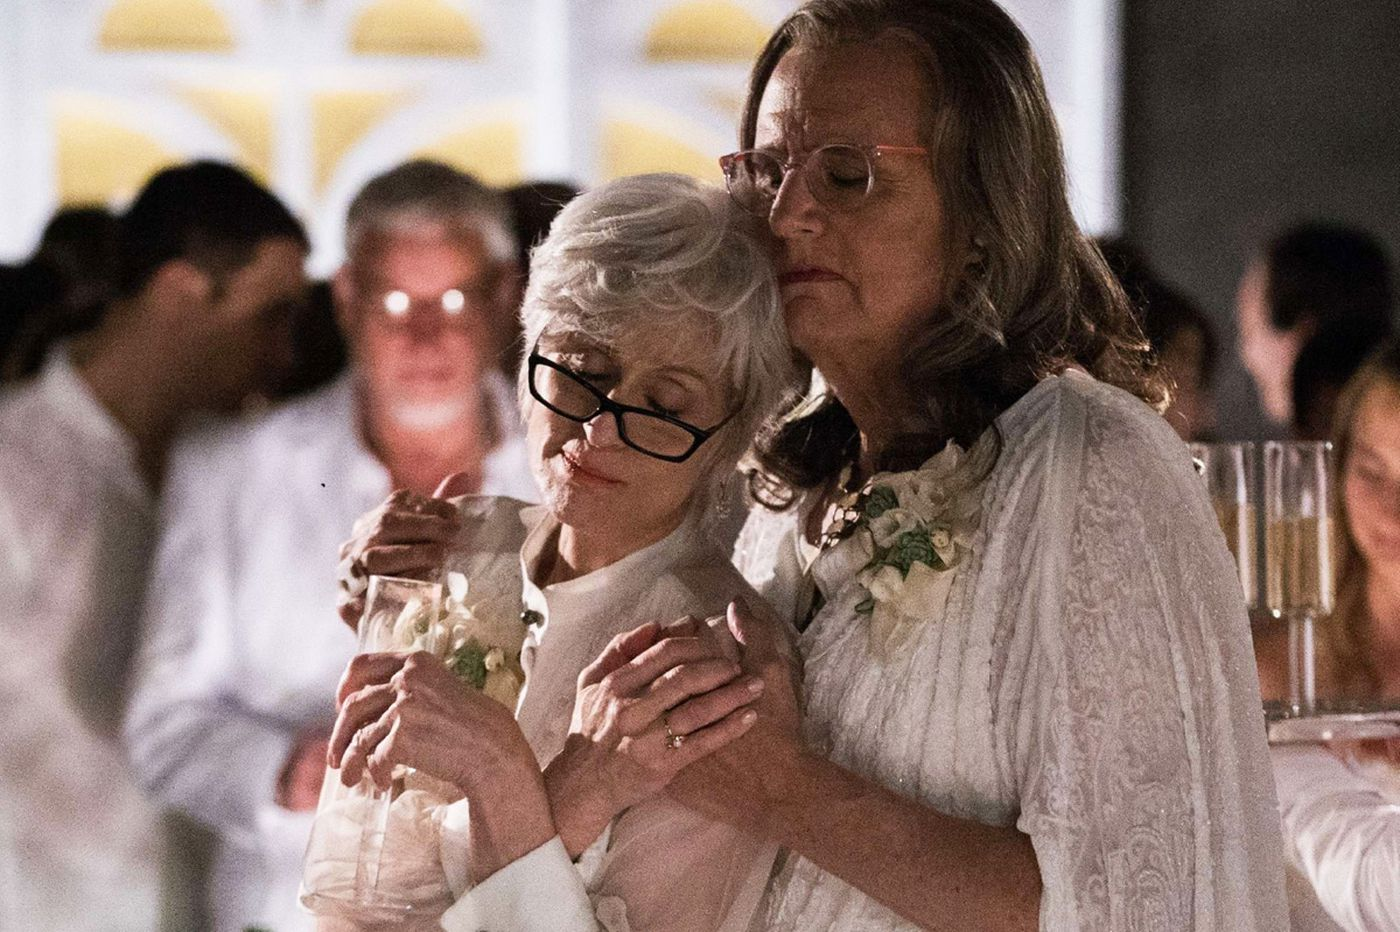 Amazon's 'Transparent' returns for a stunningly great second season